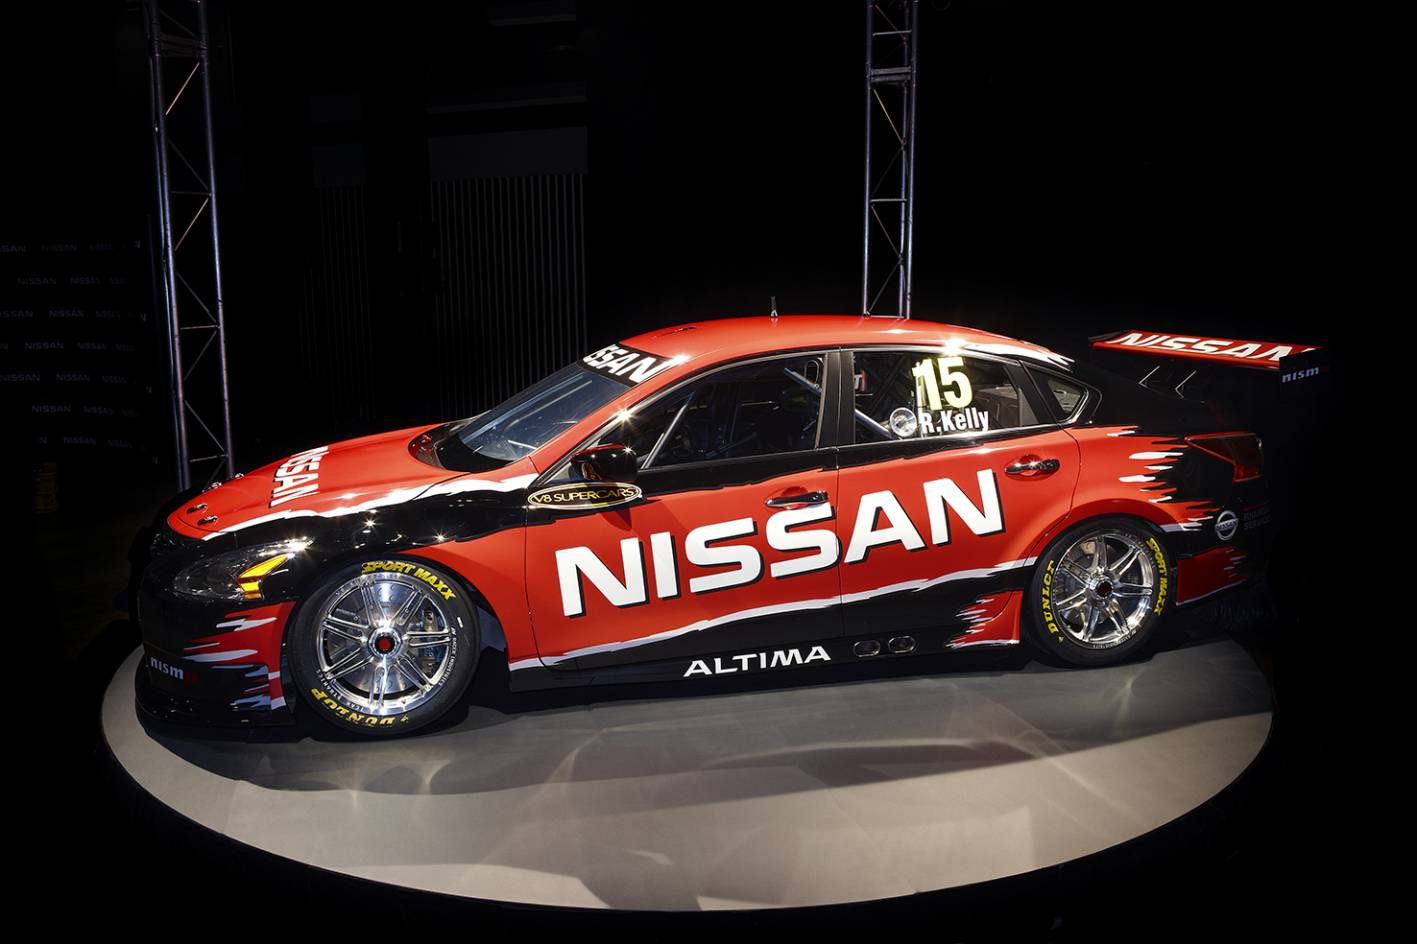 Nissan Cars - News: Altima V8 Supercar